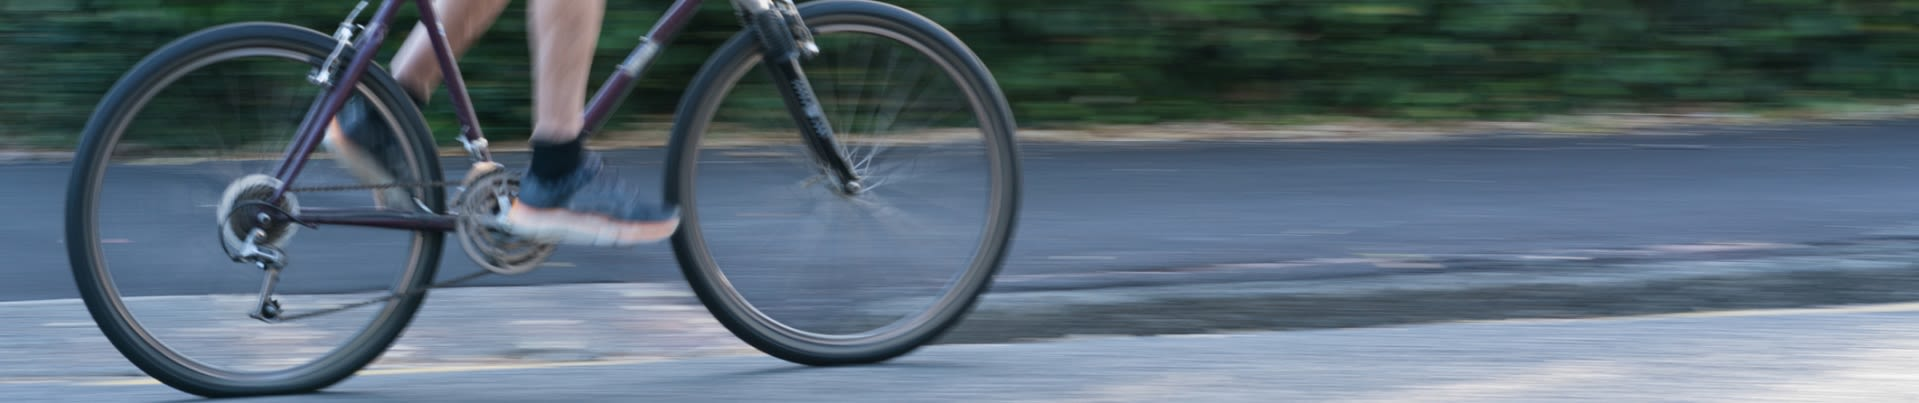 Shine Lawyers | OPINION - Should cyclists pay registration to ride on roads - BANNER